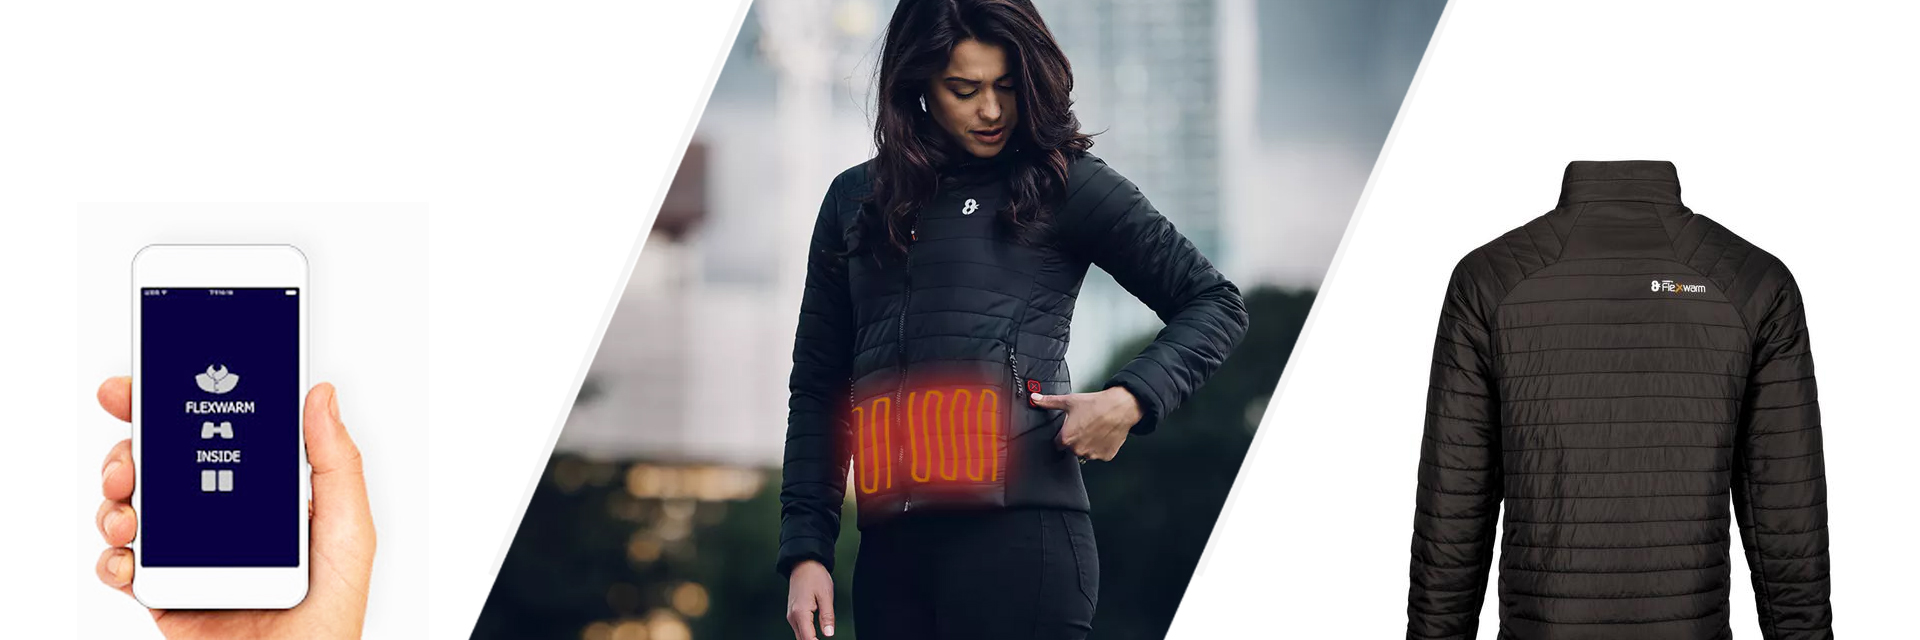 8K Flexwarm Heated Jacket